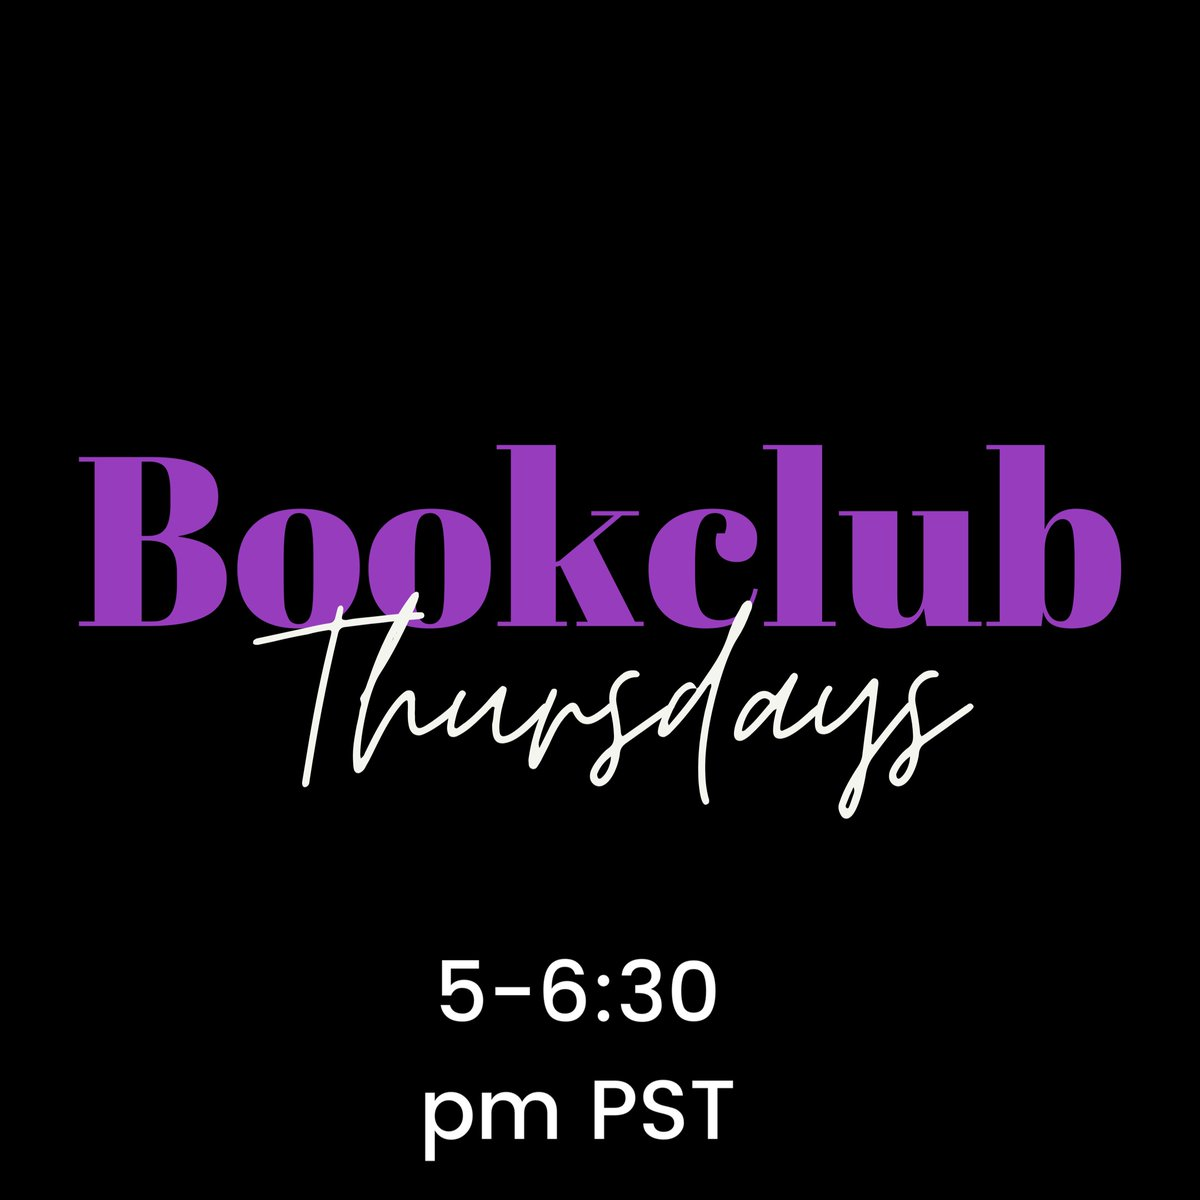 "#Join #us # for #Bookclub! Tomorrow! We are reading ""Why are All the Black Kids Sitting Together in the Cafeteria?"". Having the book is #Notrequired, we read popcorn style, so feel free to #come and #listen. Email awocspace@gmail.com for info! All are welcome! #StayHome #STEM https://t.co/H6hFhnp2zm"